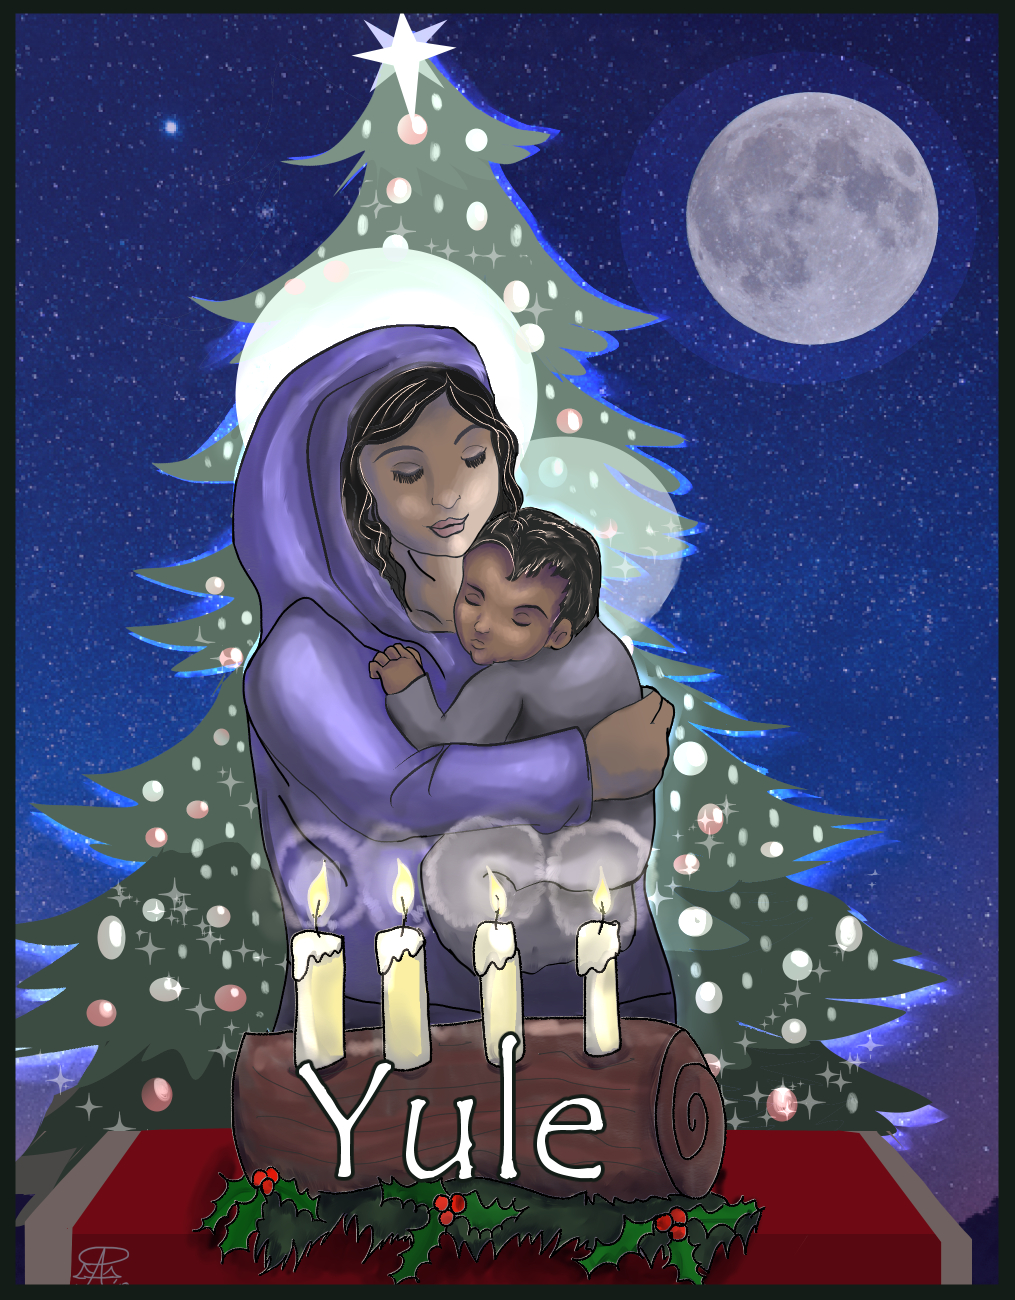 Most recent image: Yule